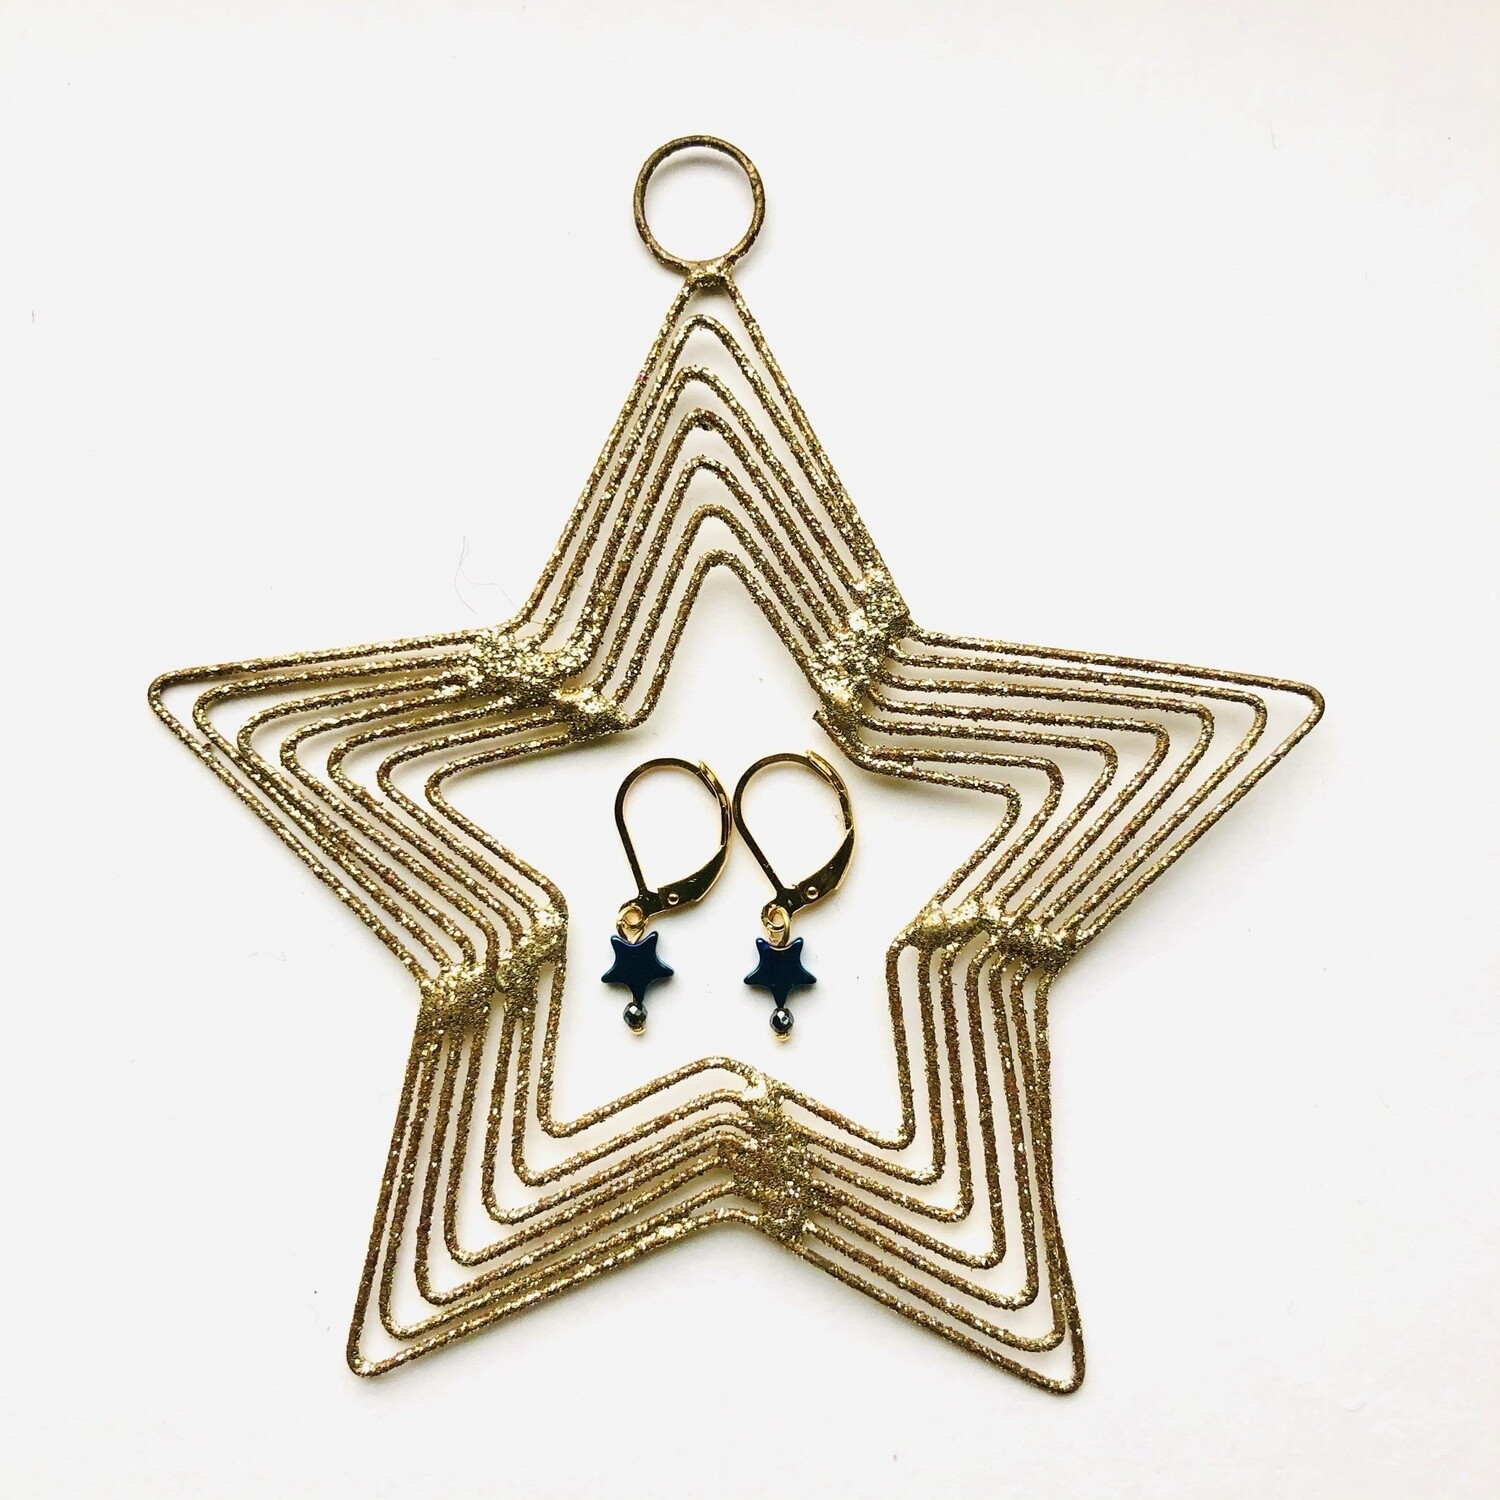 The little star earrings